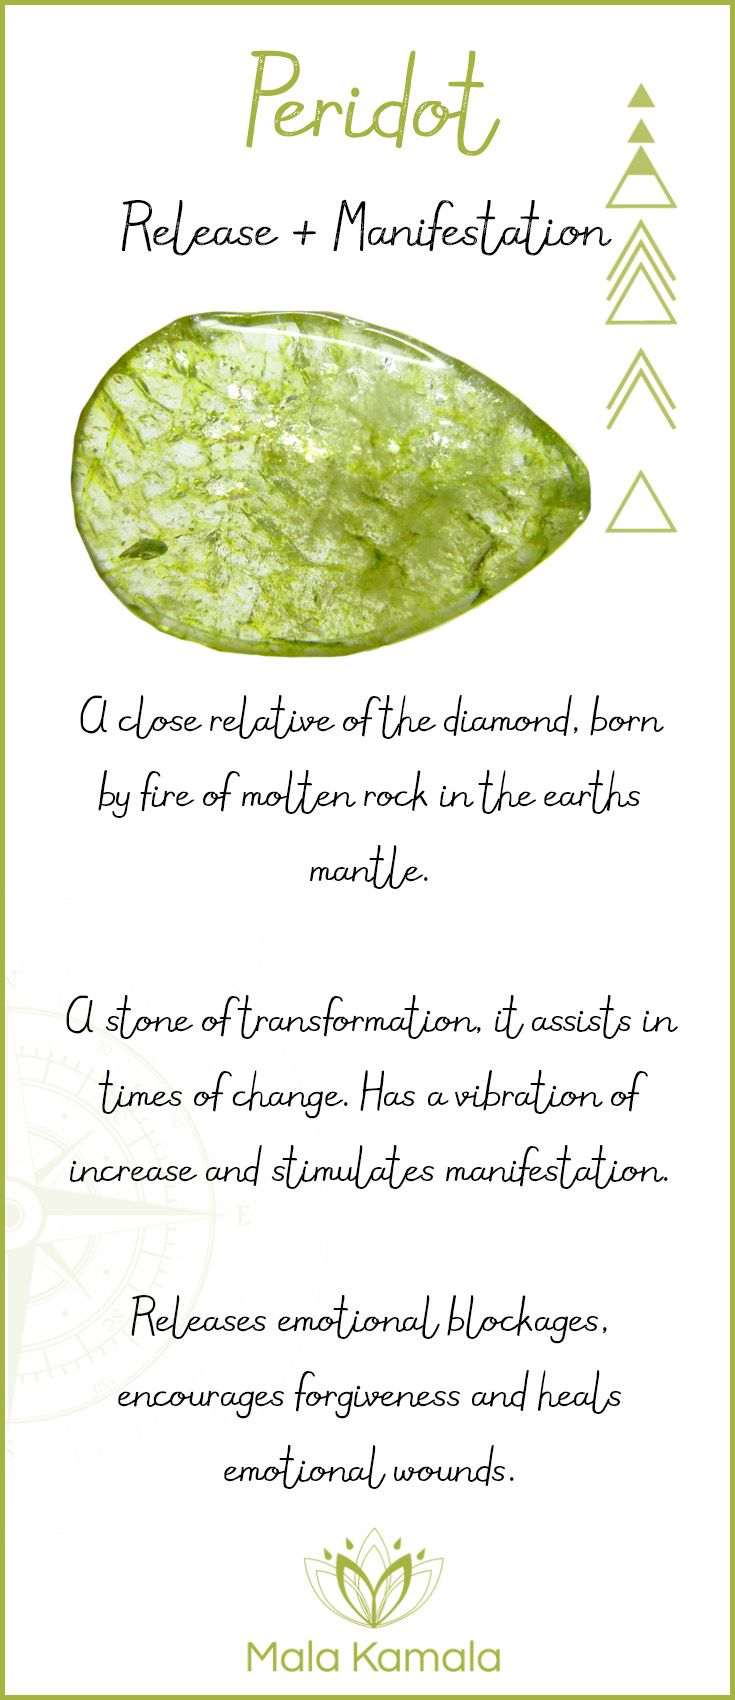 Pin To Save, Tap To Shop The Gem. What is the meaning and crystal and chakra healing properties of peridot? A stone for release, letting go and manifestation. Mala Kamala Mala Beads - Malas, Mala Beads, Mala Bracelets, Tiny Intentions, Baby Necklaces, Yog - Pinned by The Mystic's Emporium on Etsy